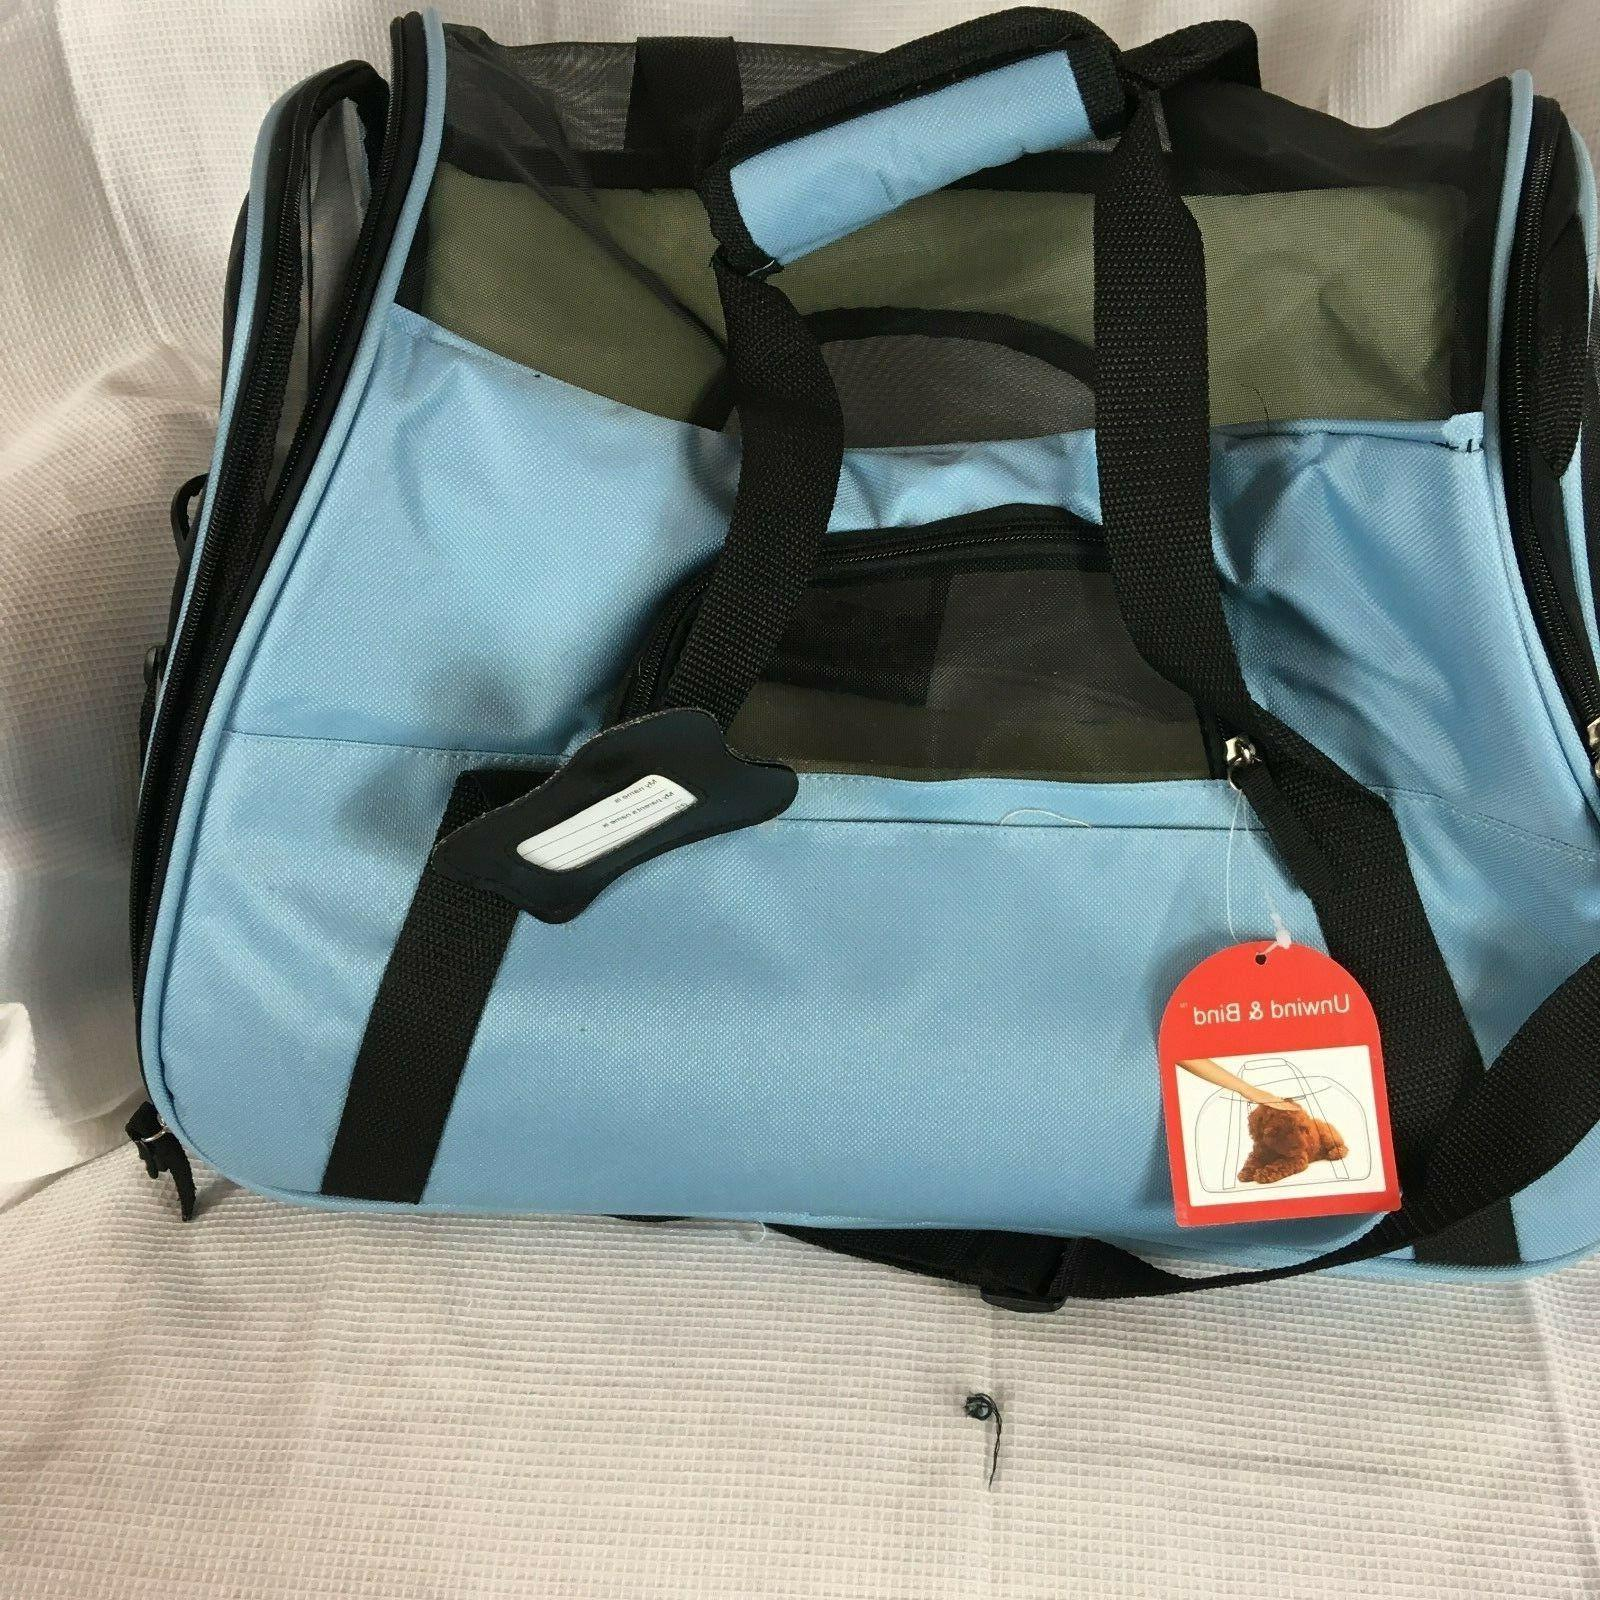 Pet Carrier mineral blue, Oxgord airline NWT, large to 10 lbs